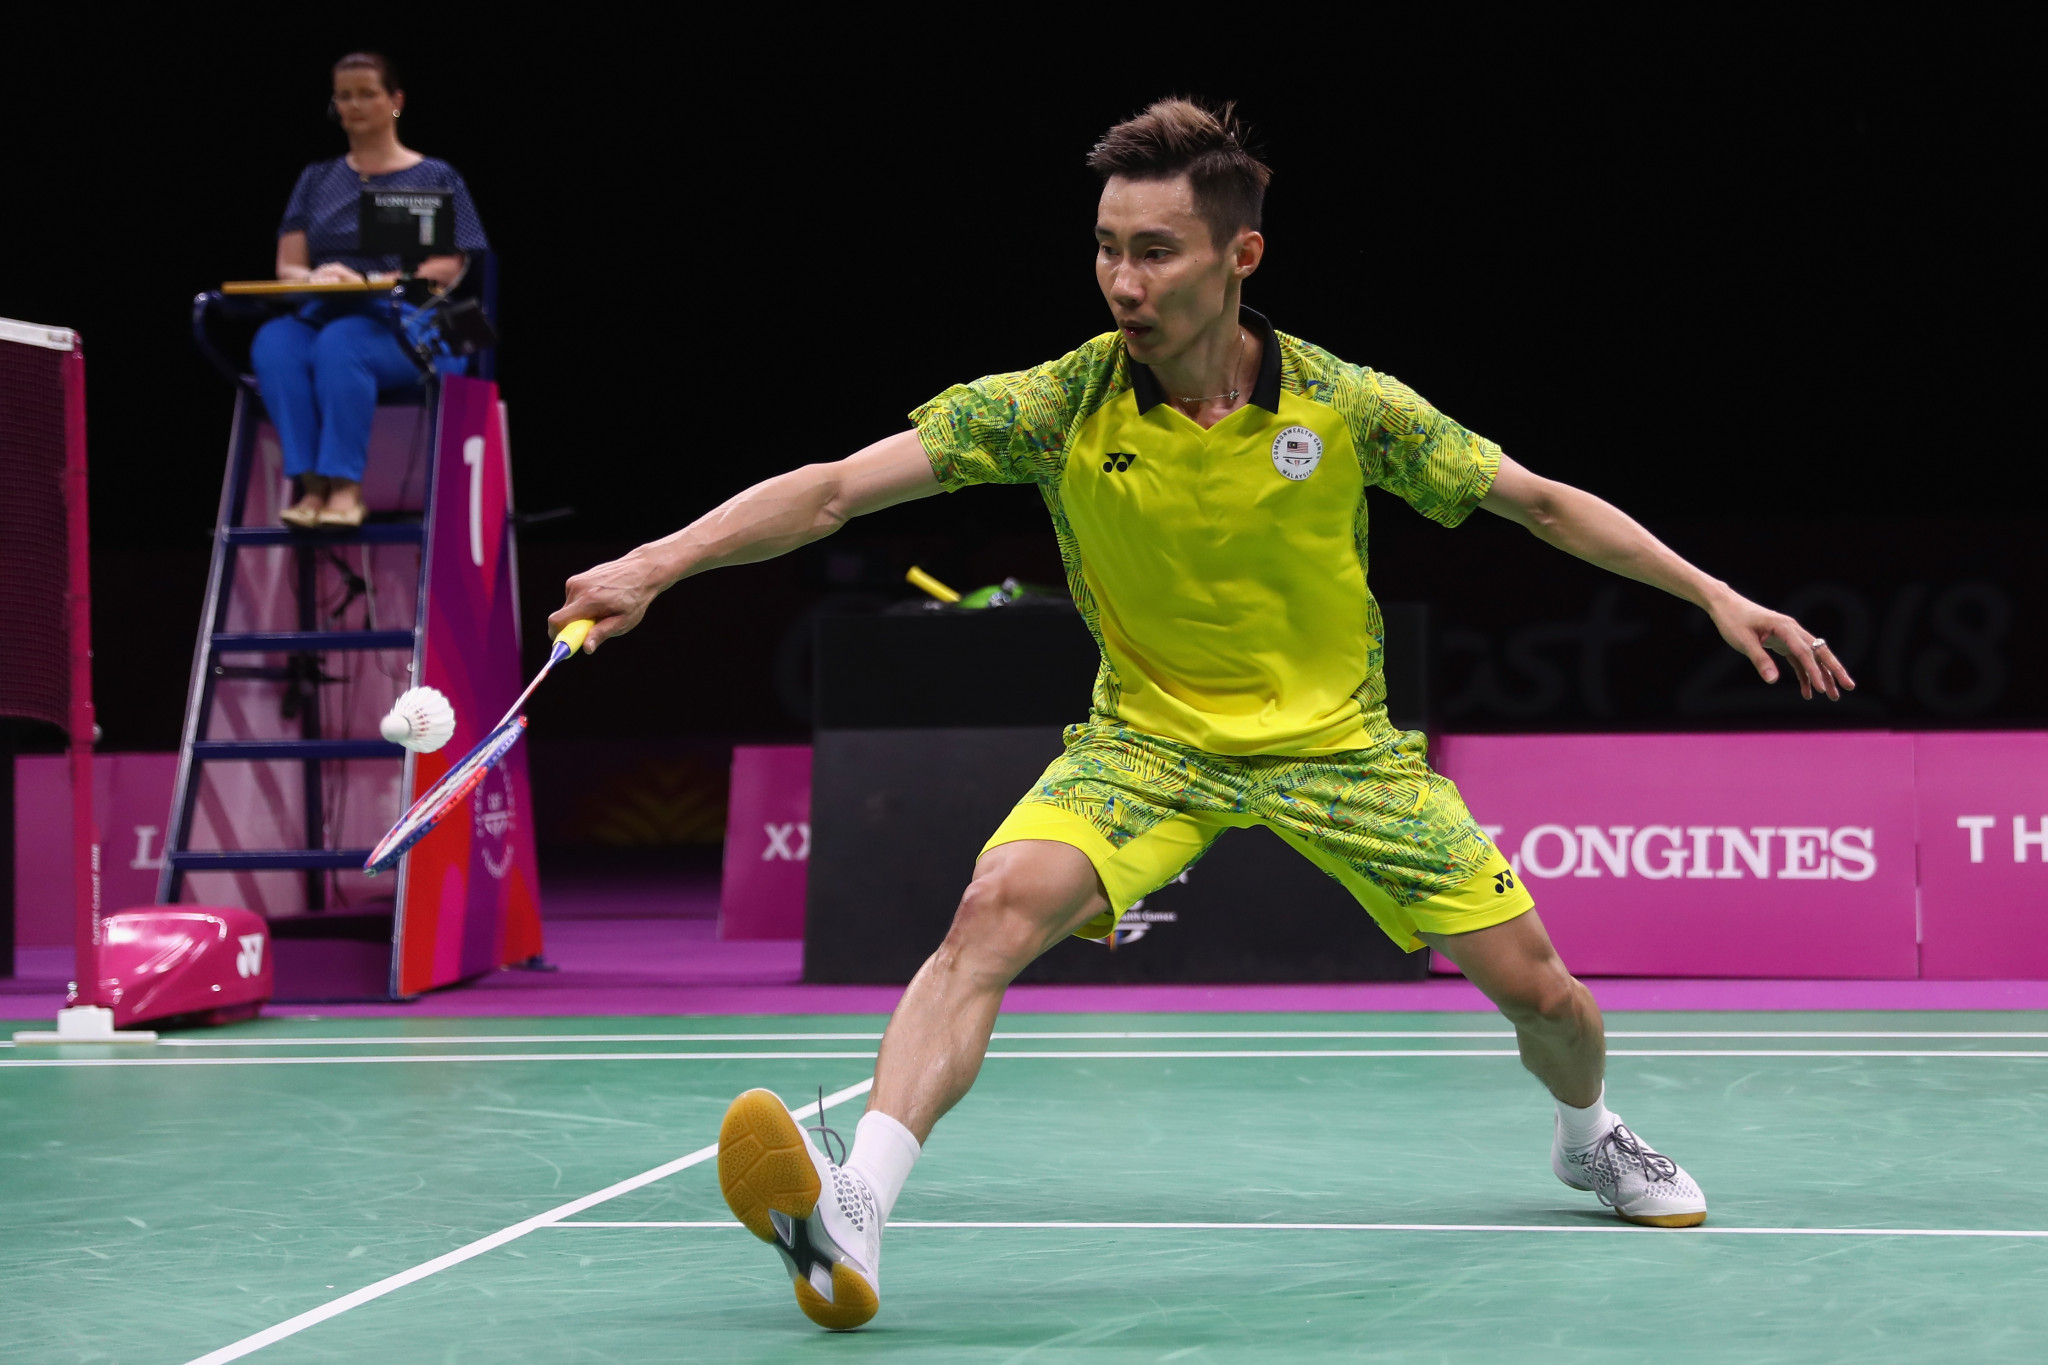 Lee Chong Wei marked his swansong with gold in the men's singles event ©Getty Images